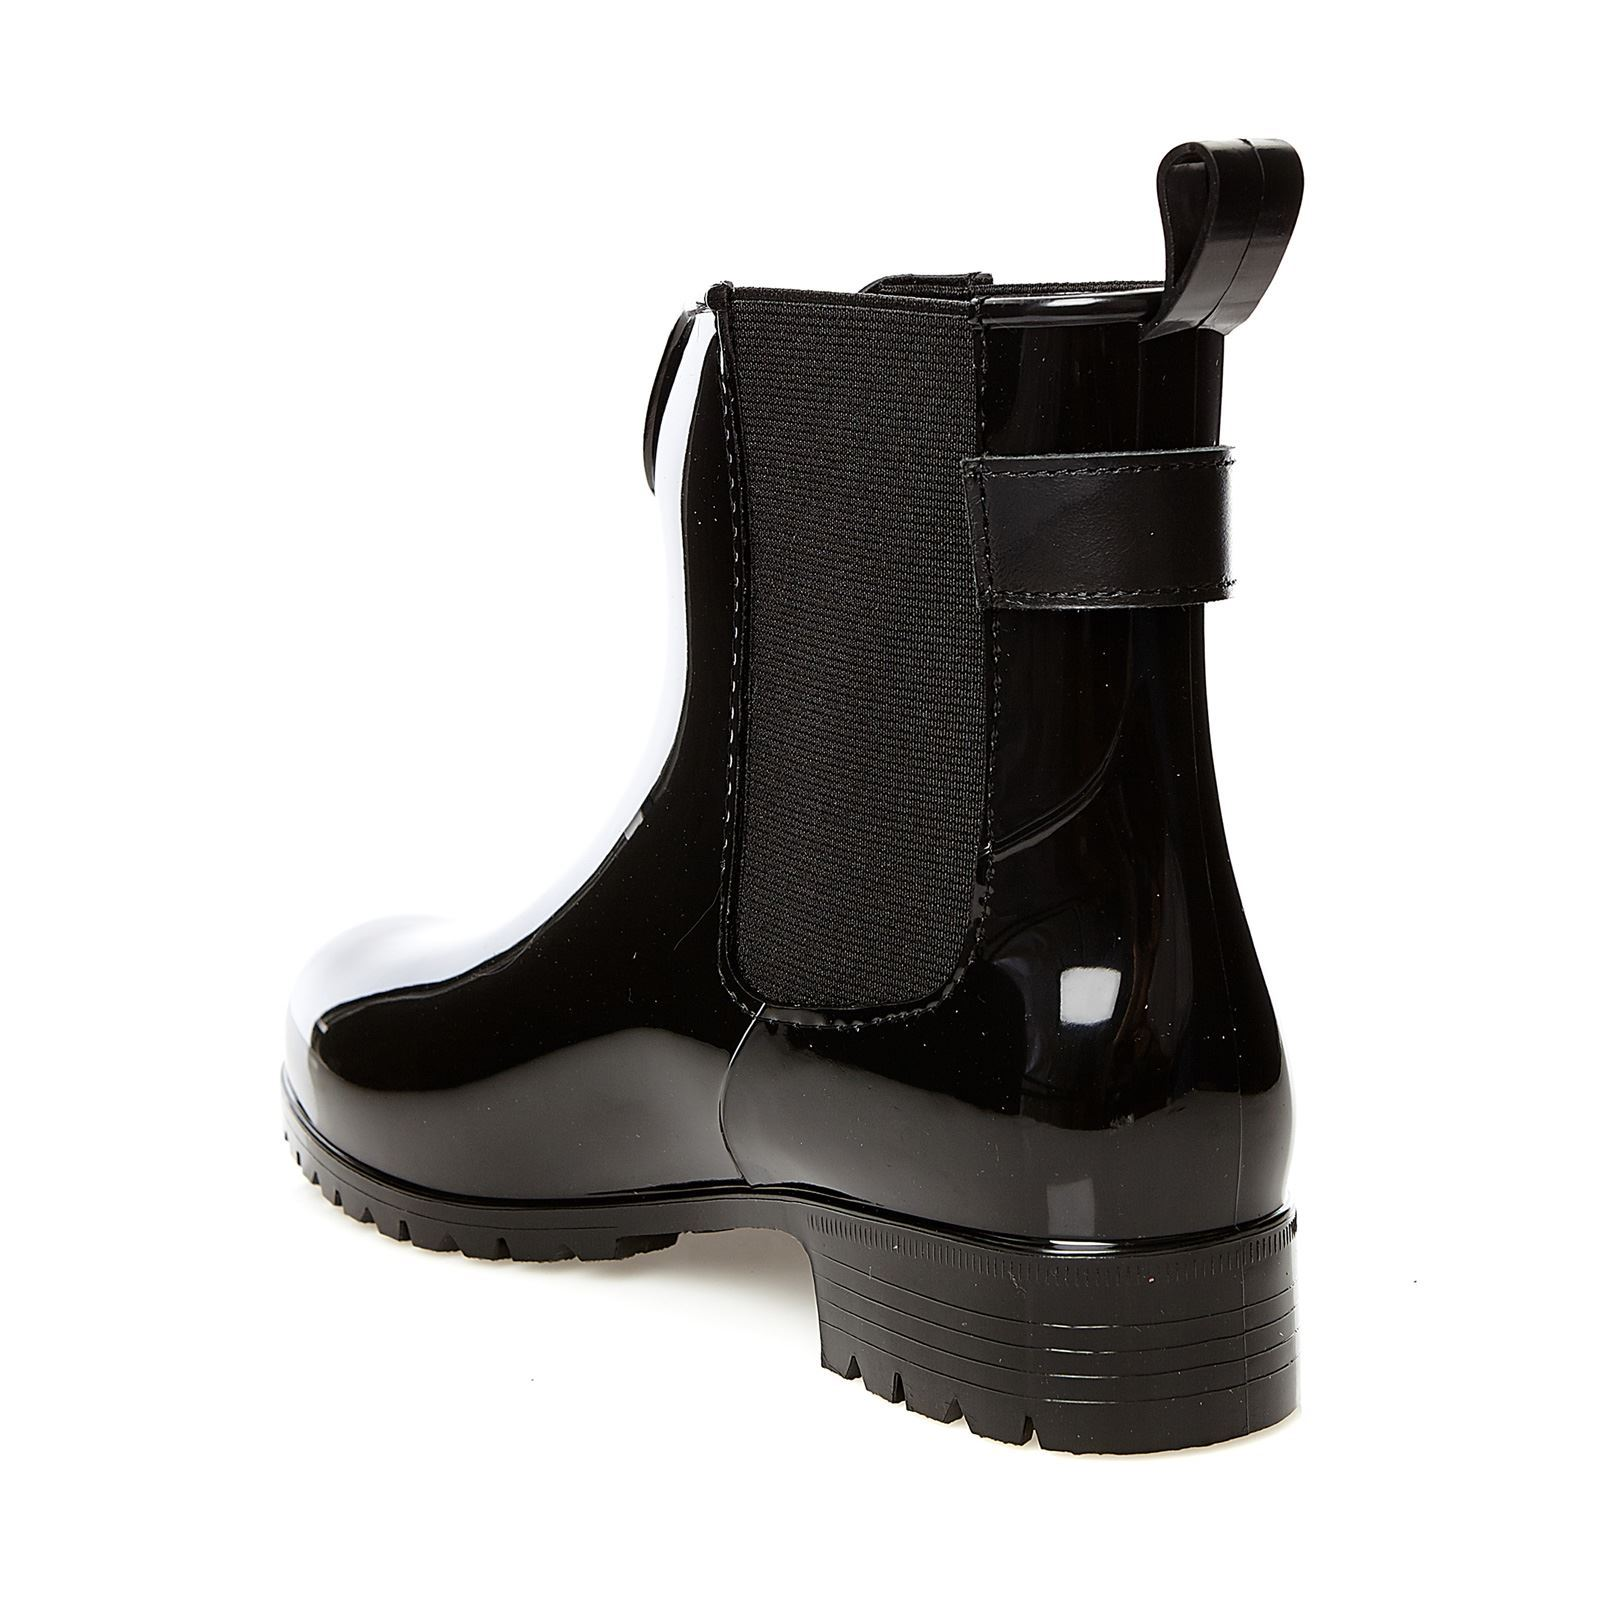 Tommy Hilfiger Oxley - Boots, Bottines - noir   BrandAlley d08909bc7bf2